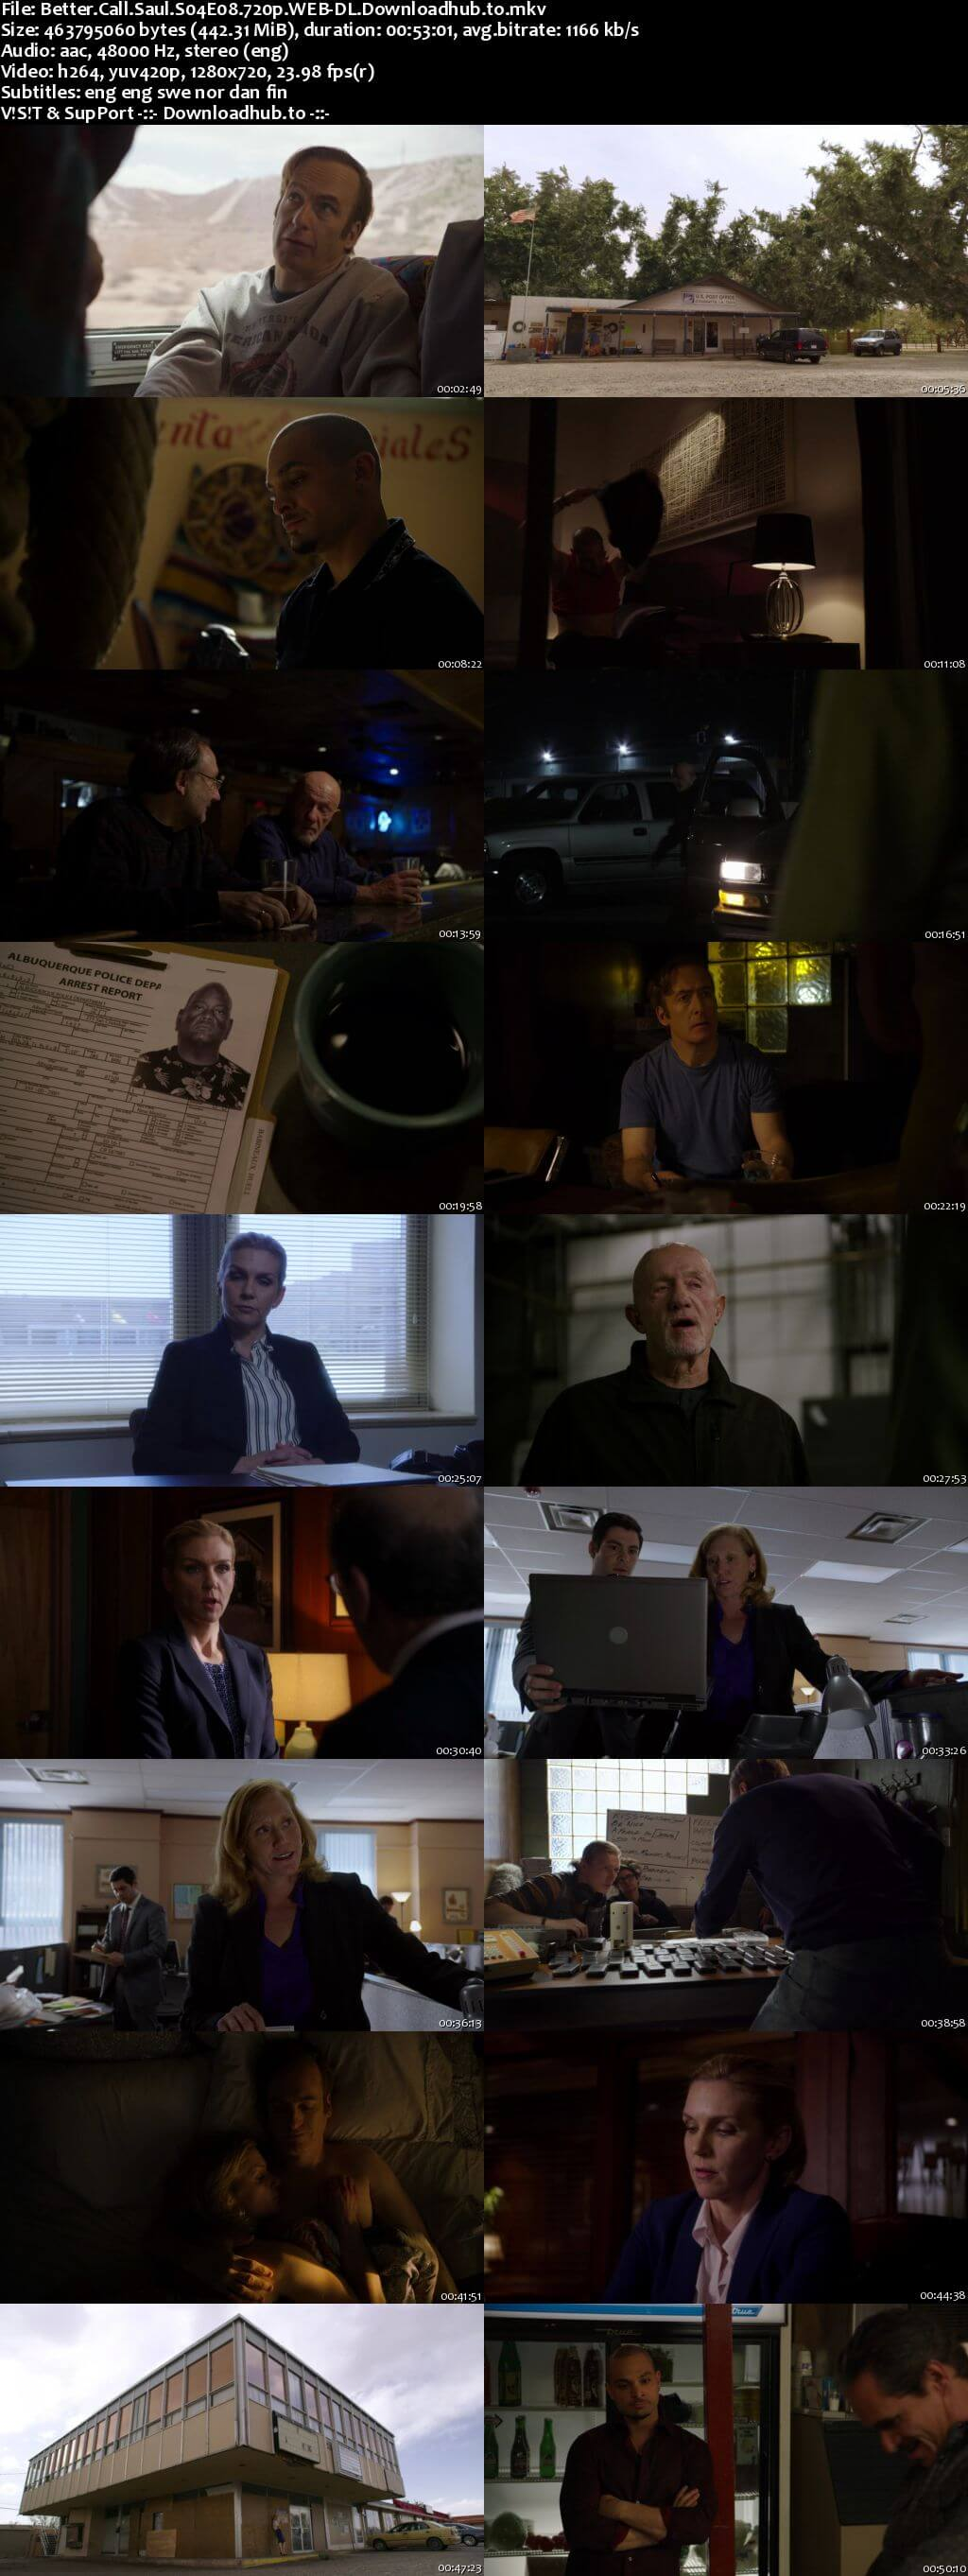 Better Call Saul S04E08 440MB WEB-DL 720p x264 MSubs